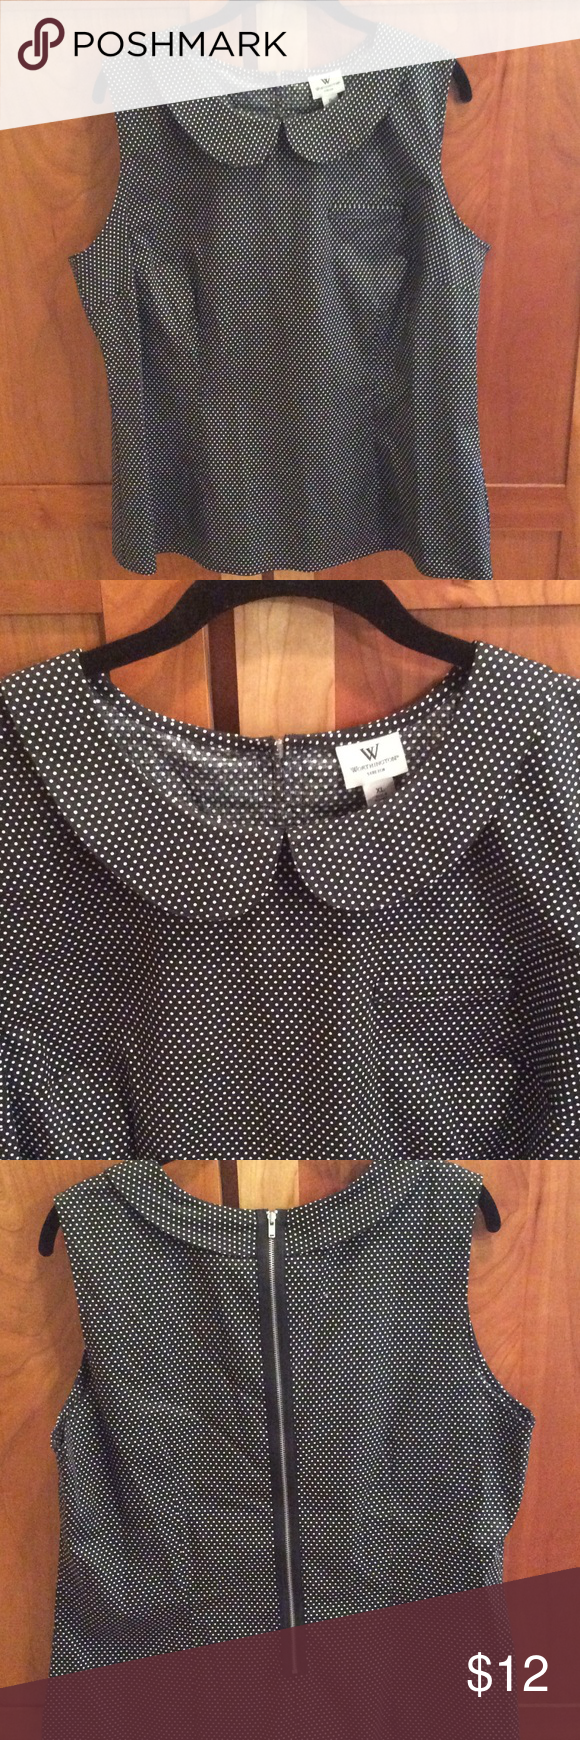 """Black & white sleeveless blouse - size XL Black & white polka dot, sleeveless blouse, rounded collar, back exposed zipper, size XL. Measures 22"""" across and 25"""" length. 97% cotton, 3% spandex, has some stretch. Worthington brand from JCPenney. Never worn...very cute! Worthington Tops Blouses"""